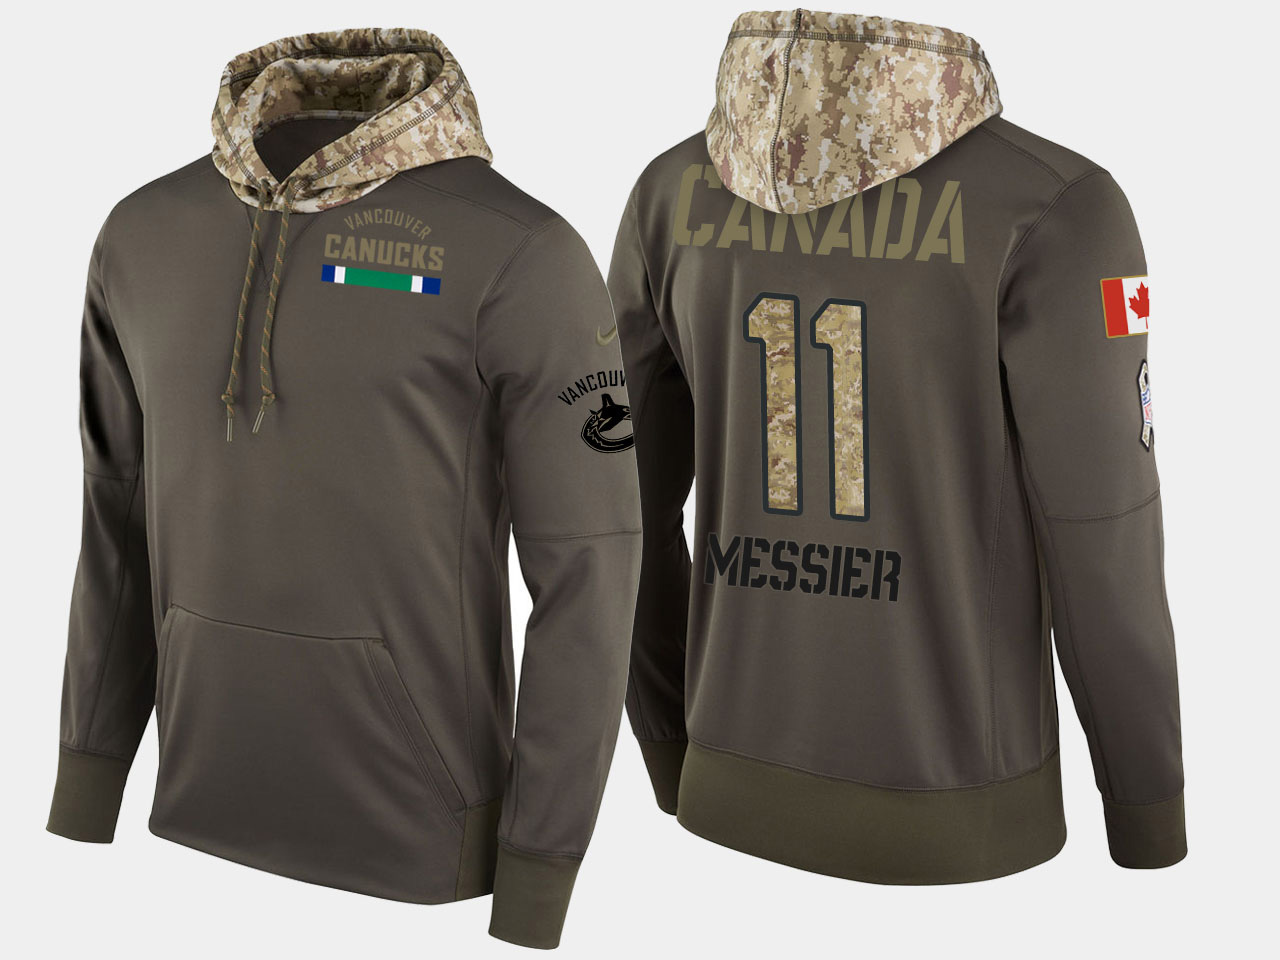 Nike Canucks 11 Mark Nessier Retired Olive Salute To Service Pullover Hoodie